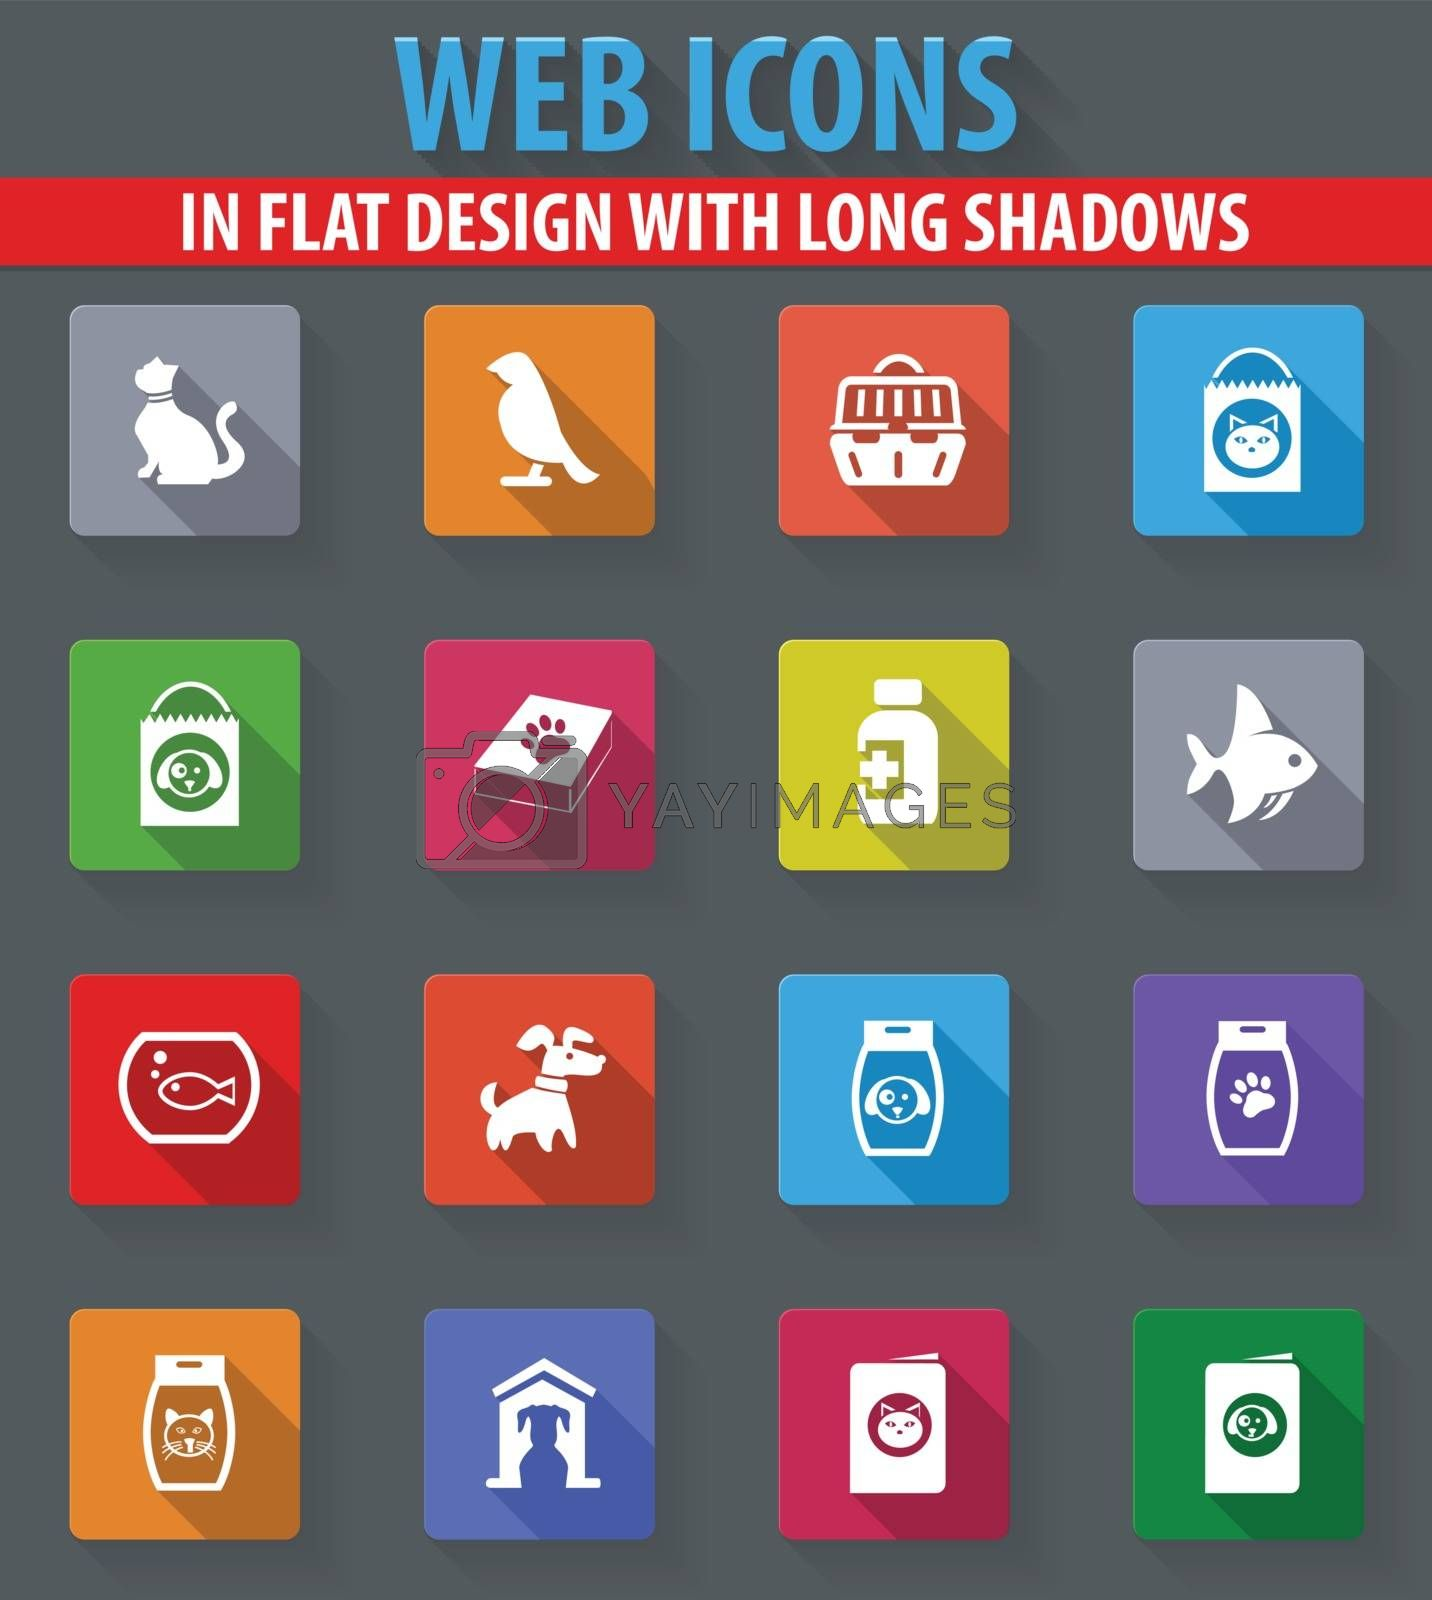 Goods for pets web icons in flat design with long shadows